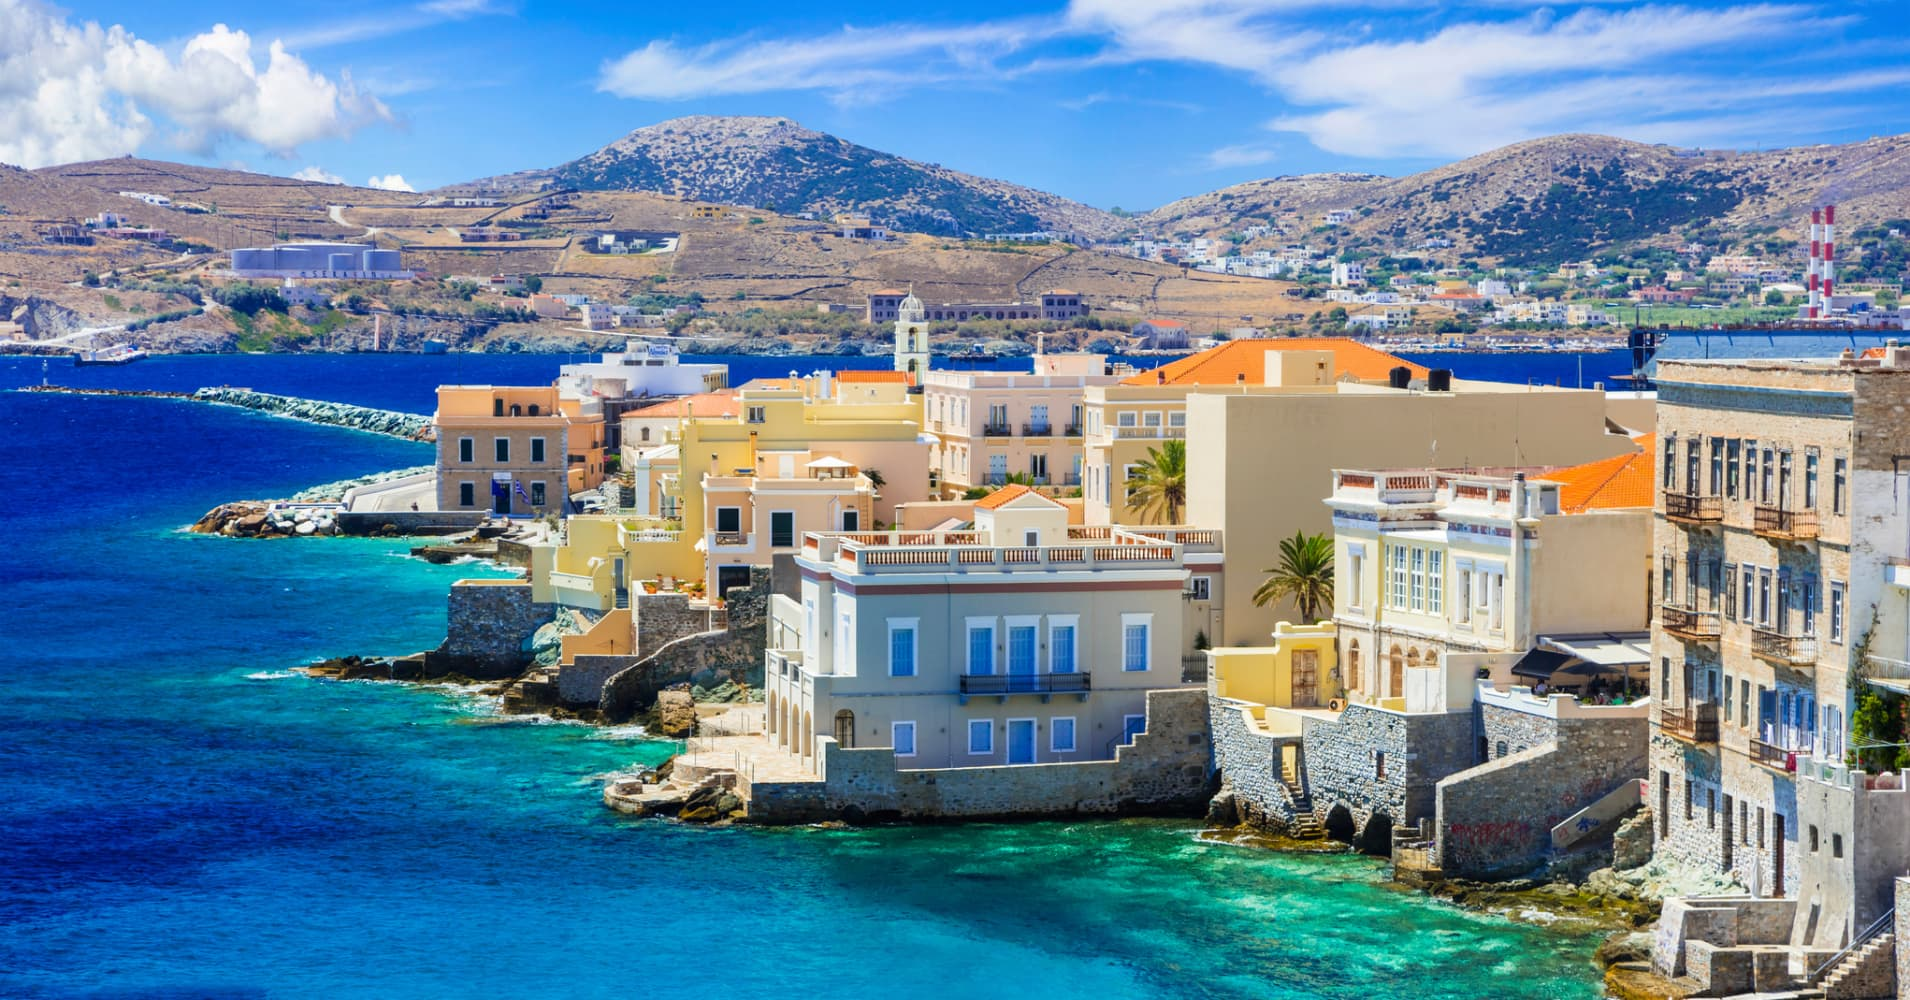 Dream job alert: Get paid to live on a stunning Greek island with 55 cats